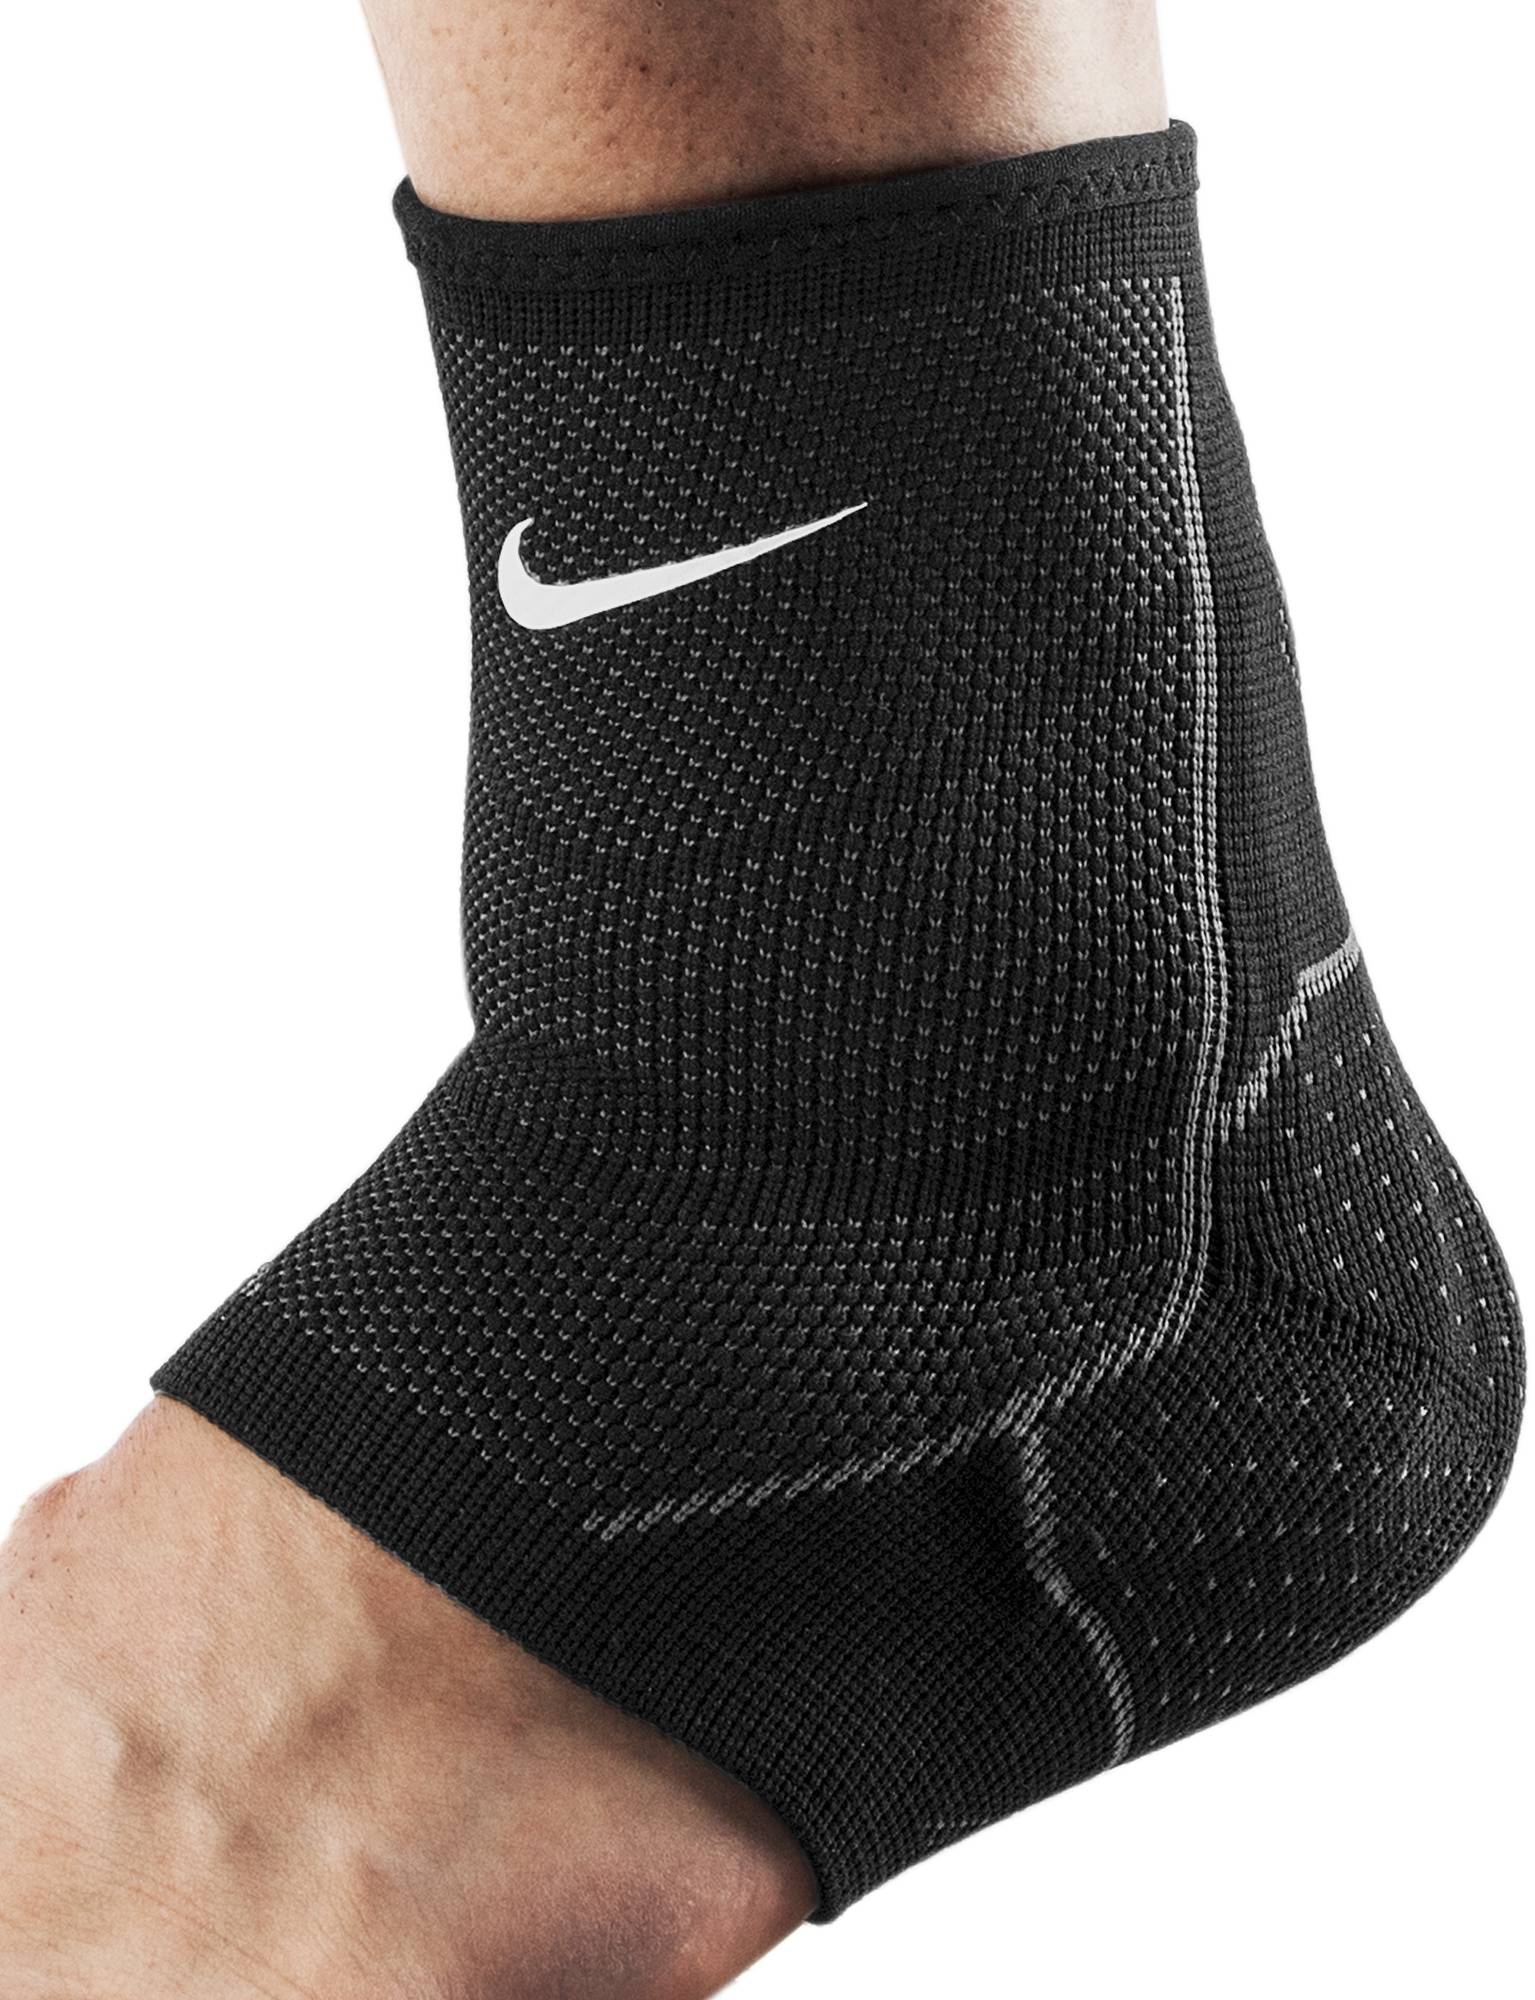 Nike Advantage Knitted Ankle Sleeve - SX-MS.75-031